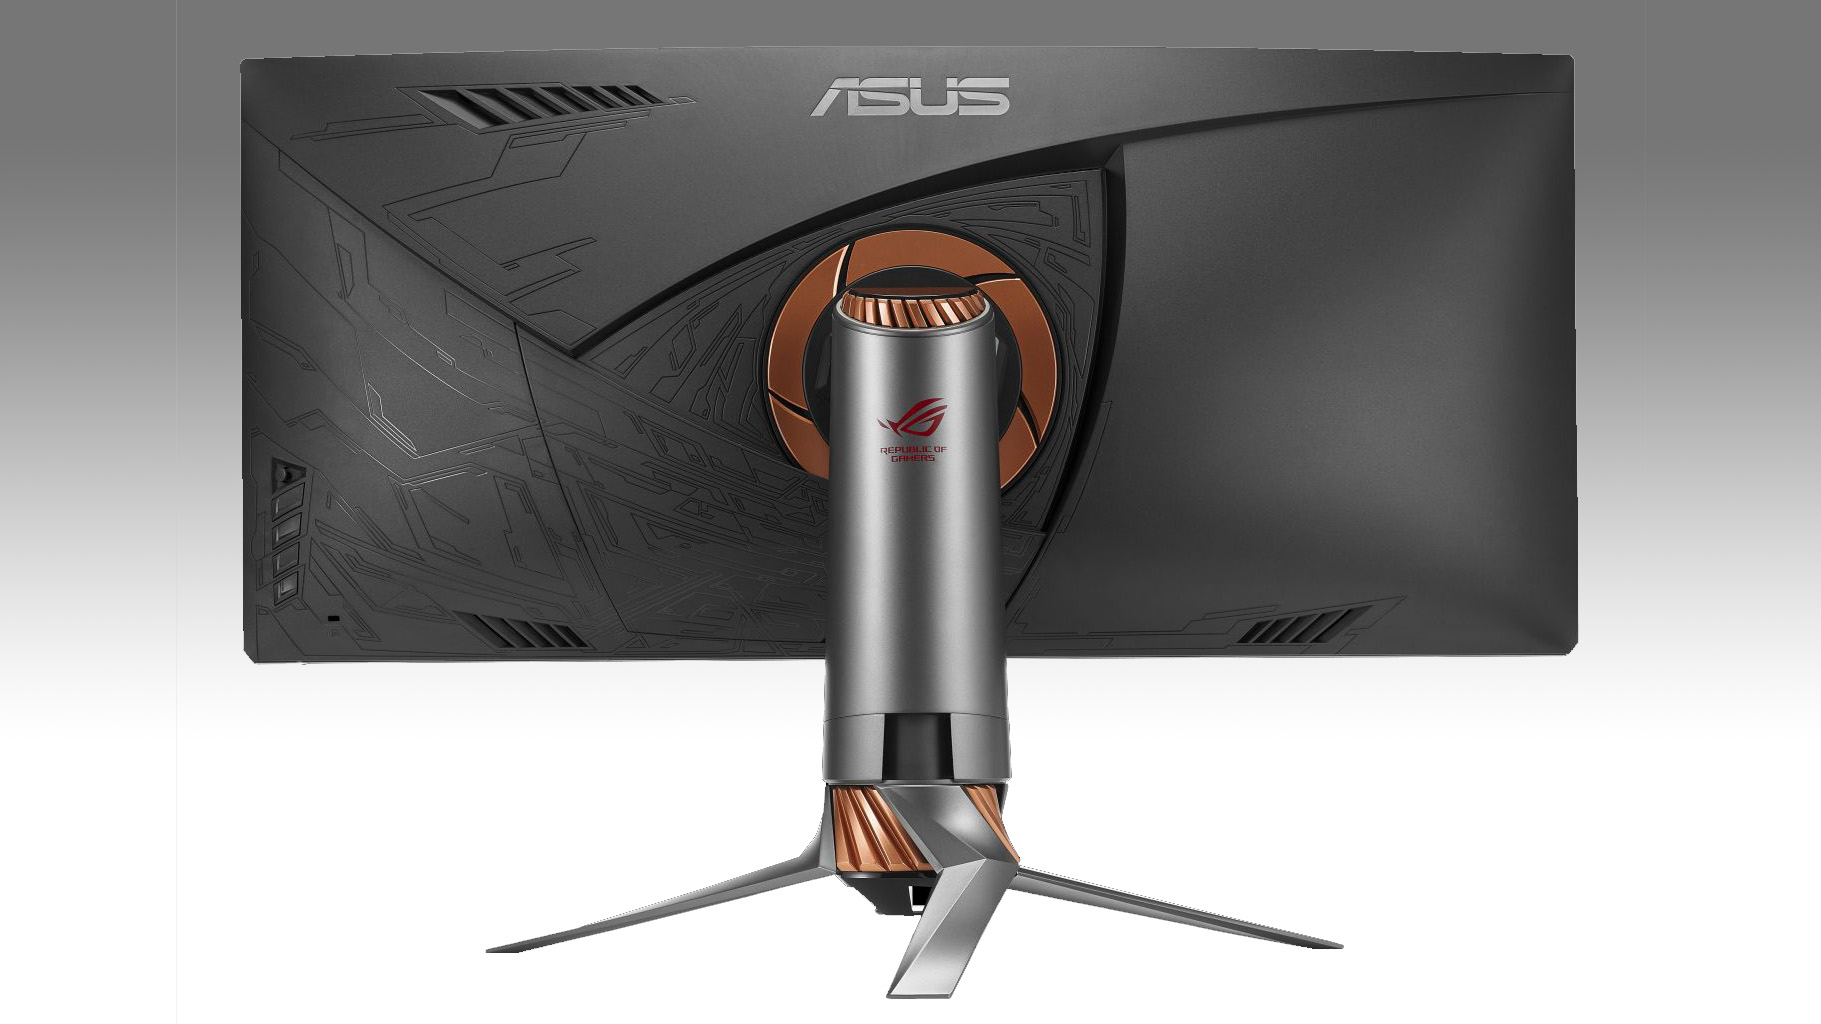 Asus ROG Swift PG348Q - Design